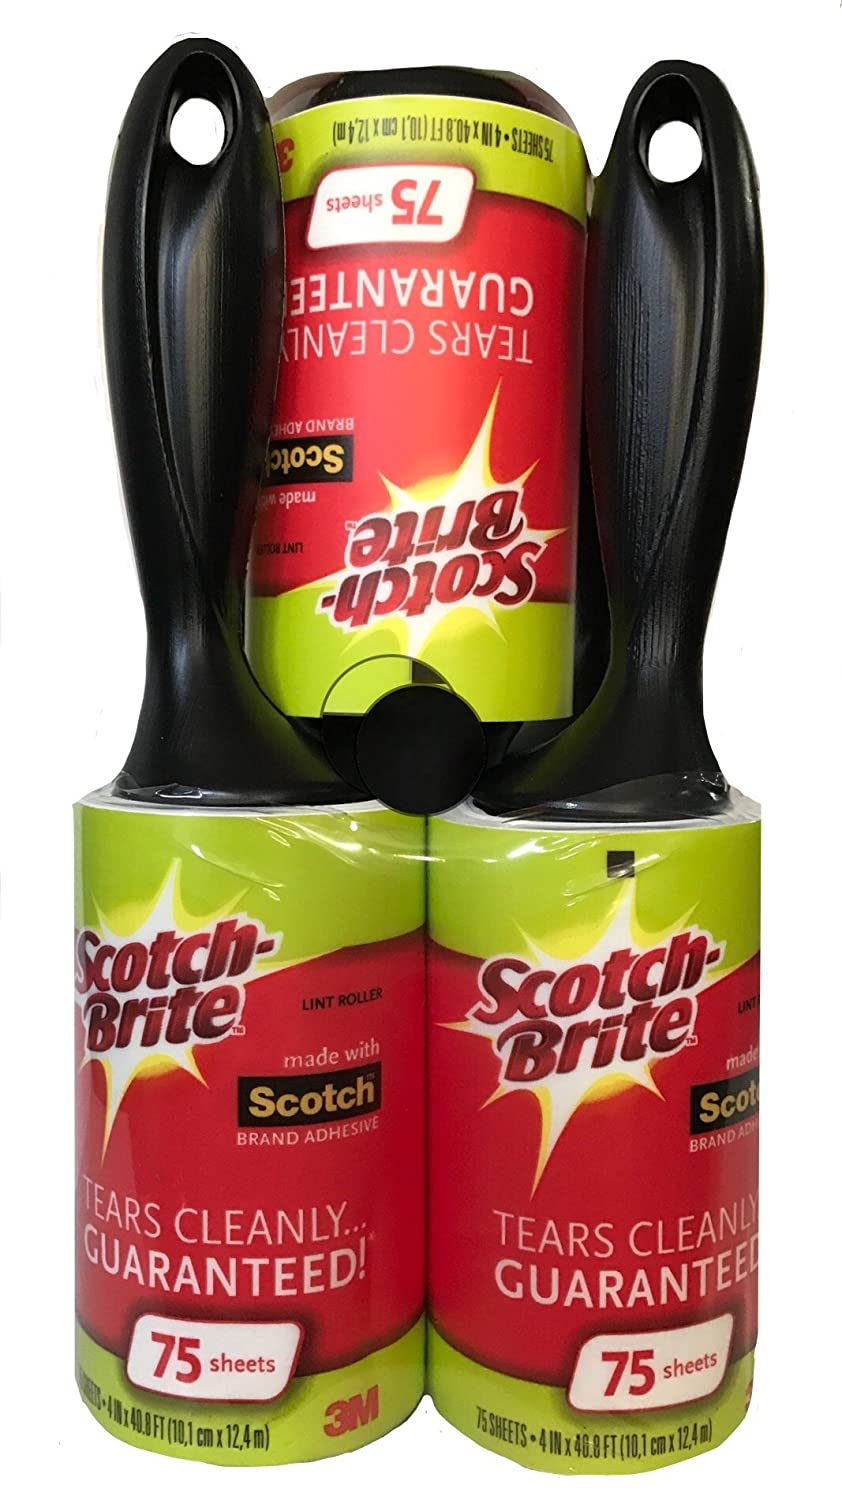 Scotch Brite Lint Roller, Value Pack of 75 Sheets, 375 Total Sheets